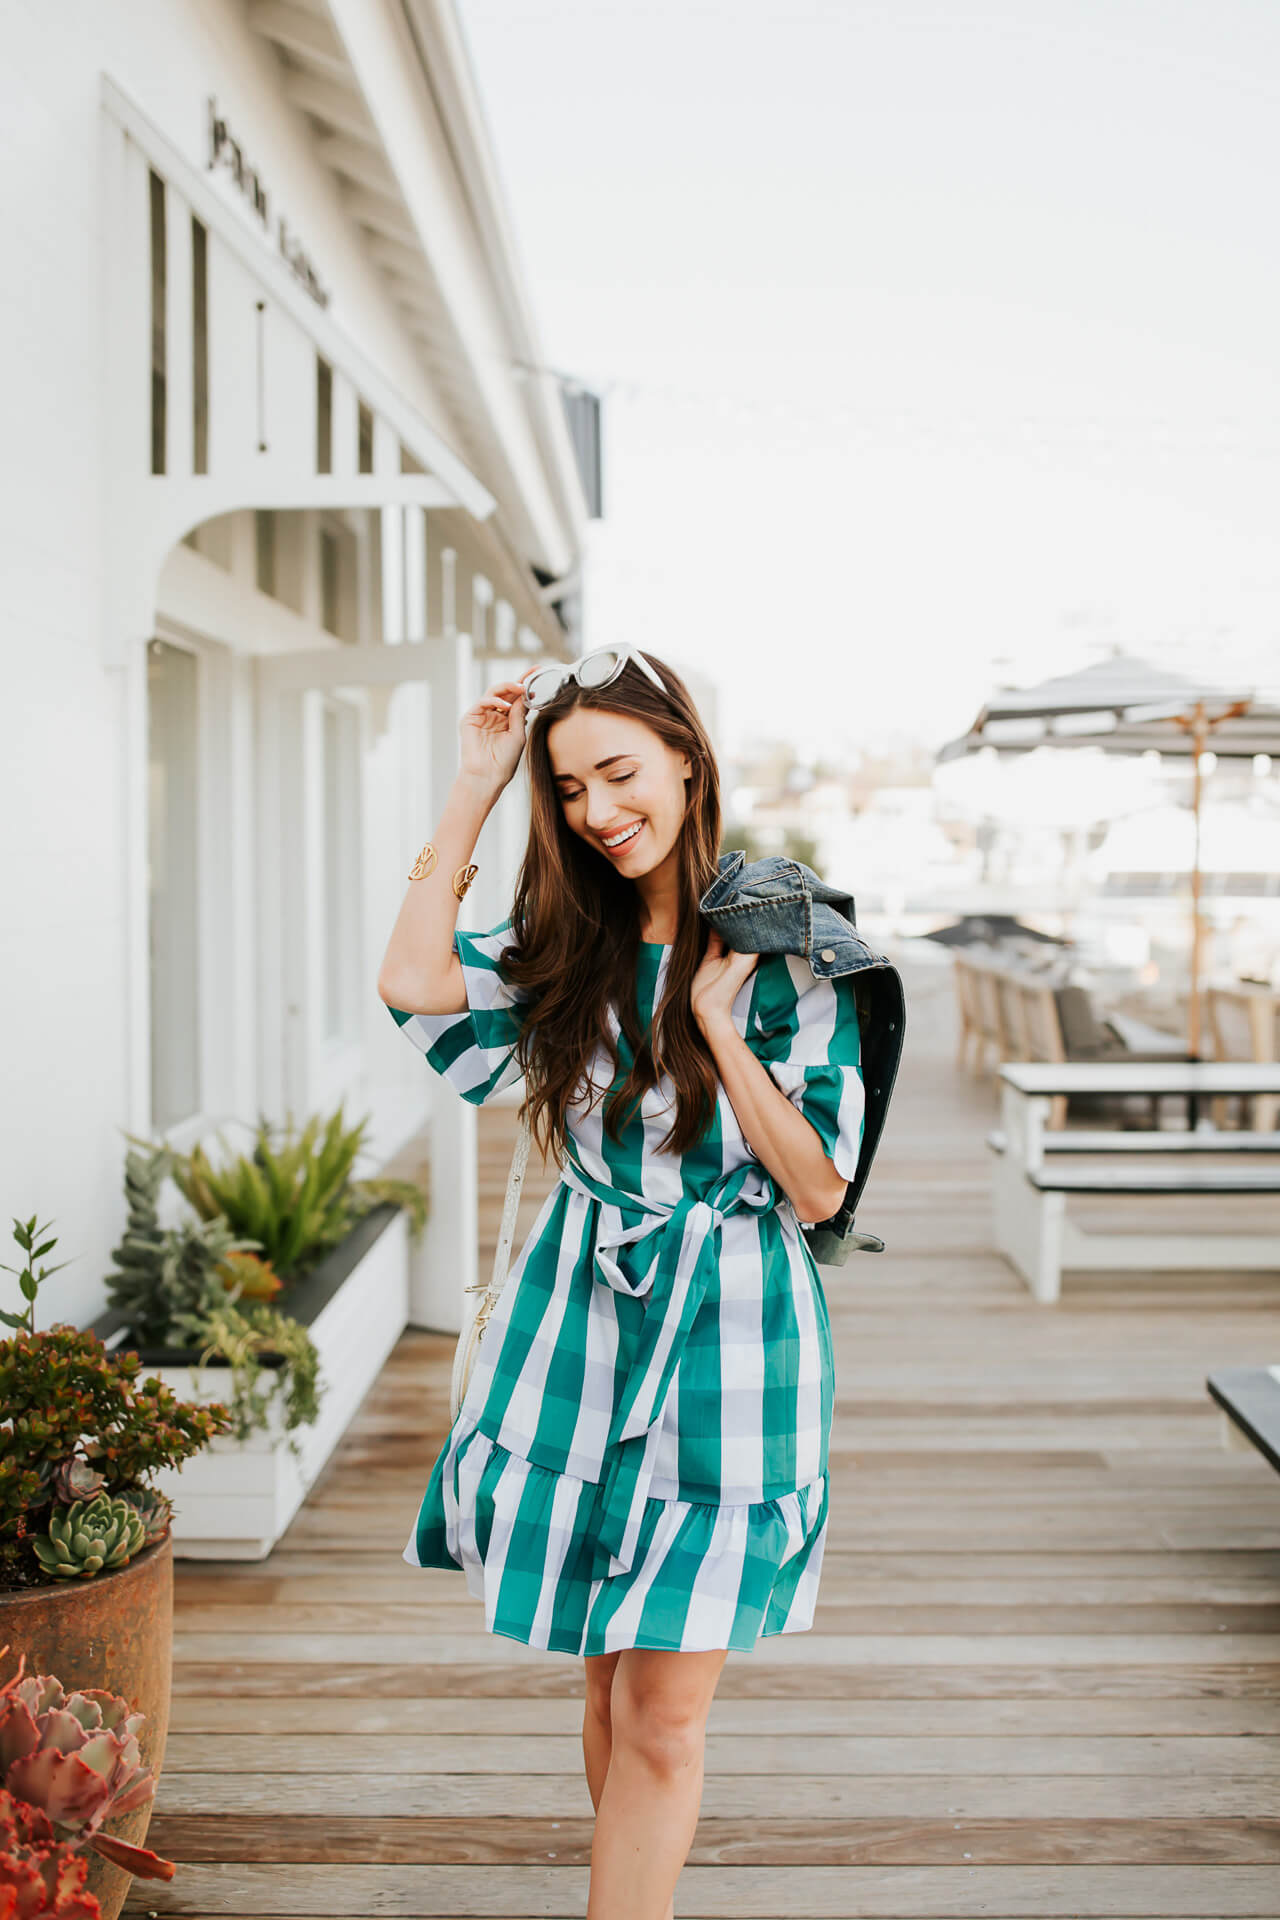 I really like pairing this sweet gingham dress with a denim jacket that adds a little edge. | M Loves M @marmar